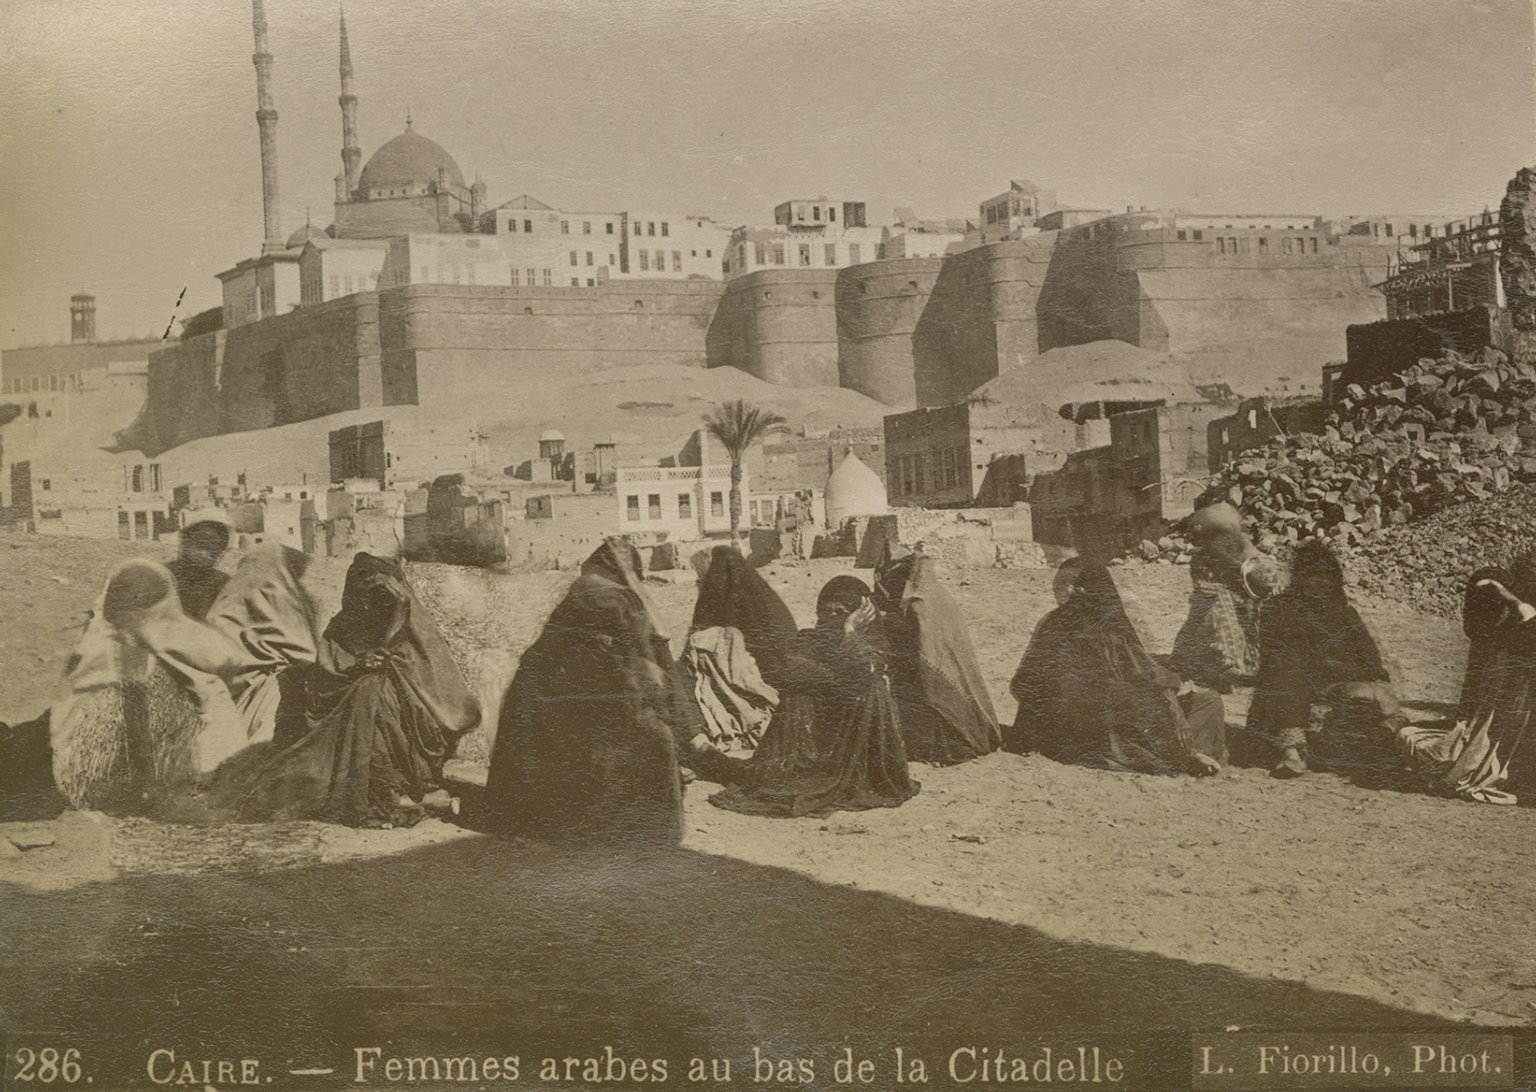 Women in front of the Saladin Citadel of Cairo